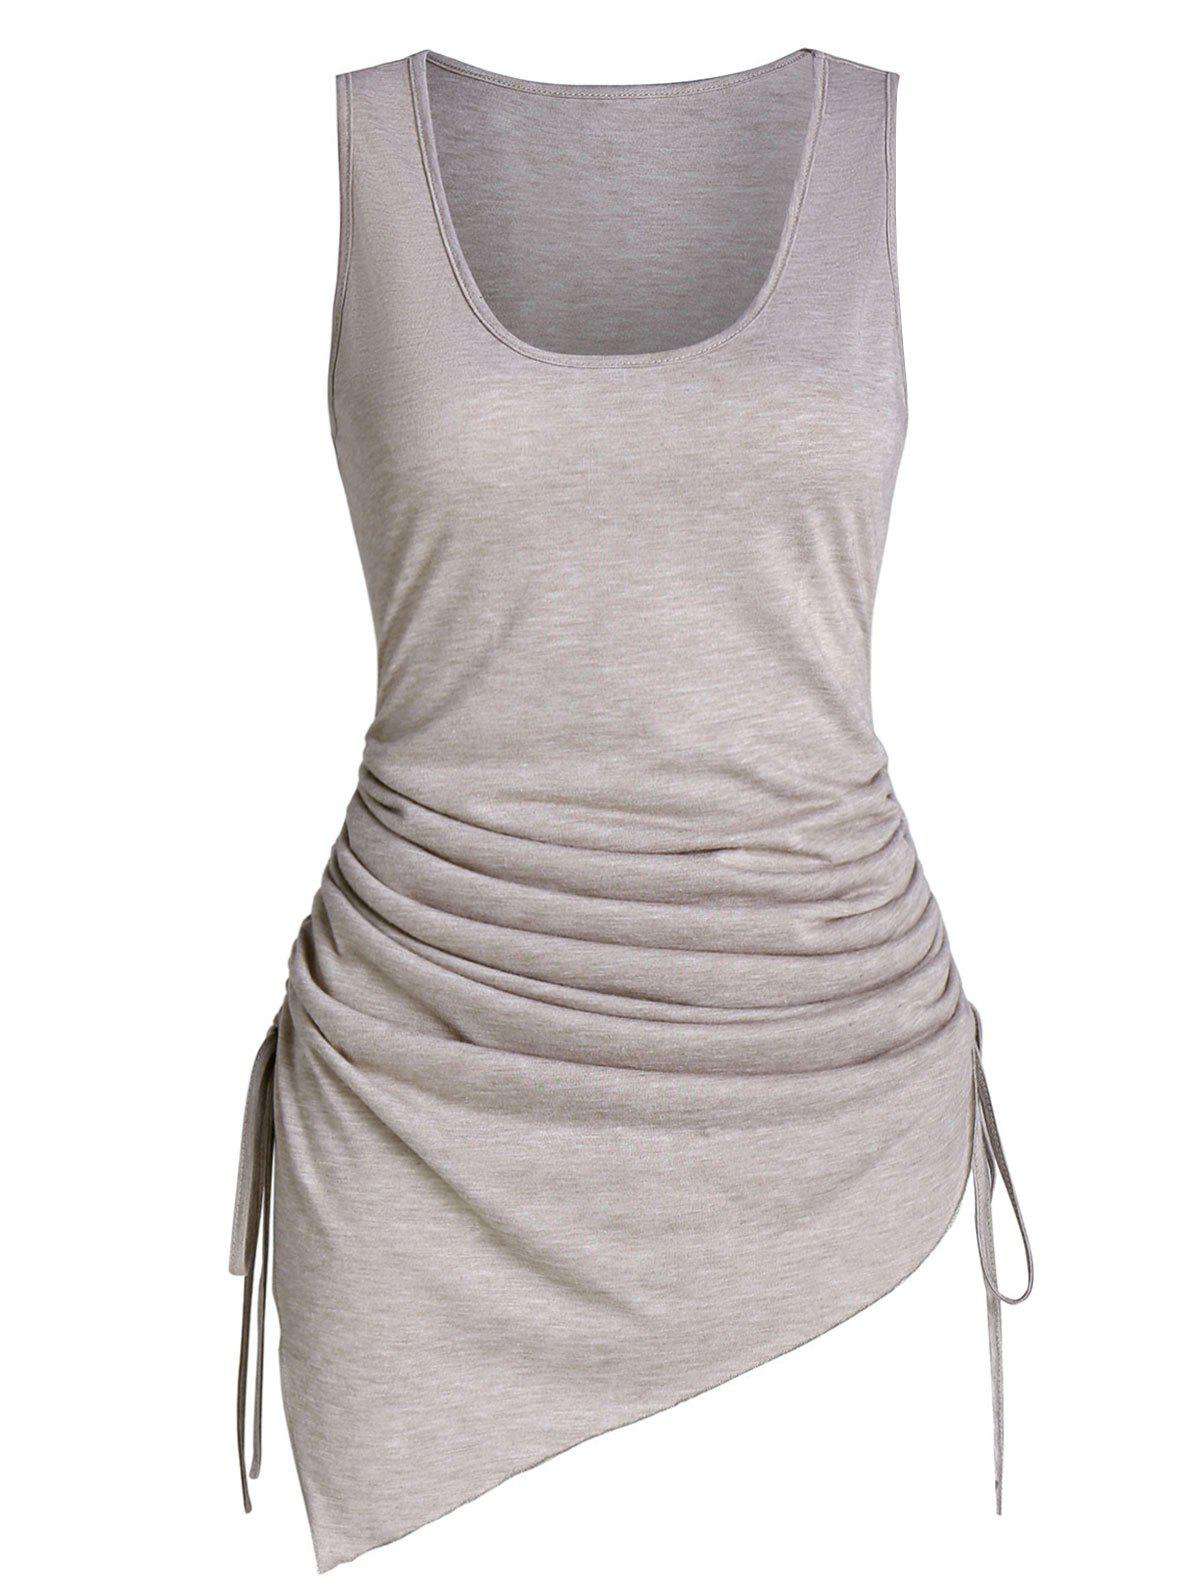 Asymmetric Ruched Cinched Tank Top - TAN M